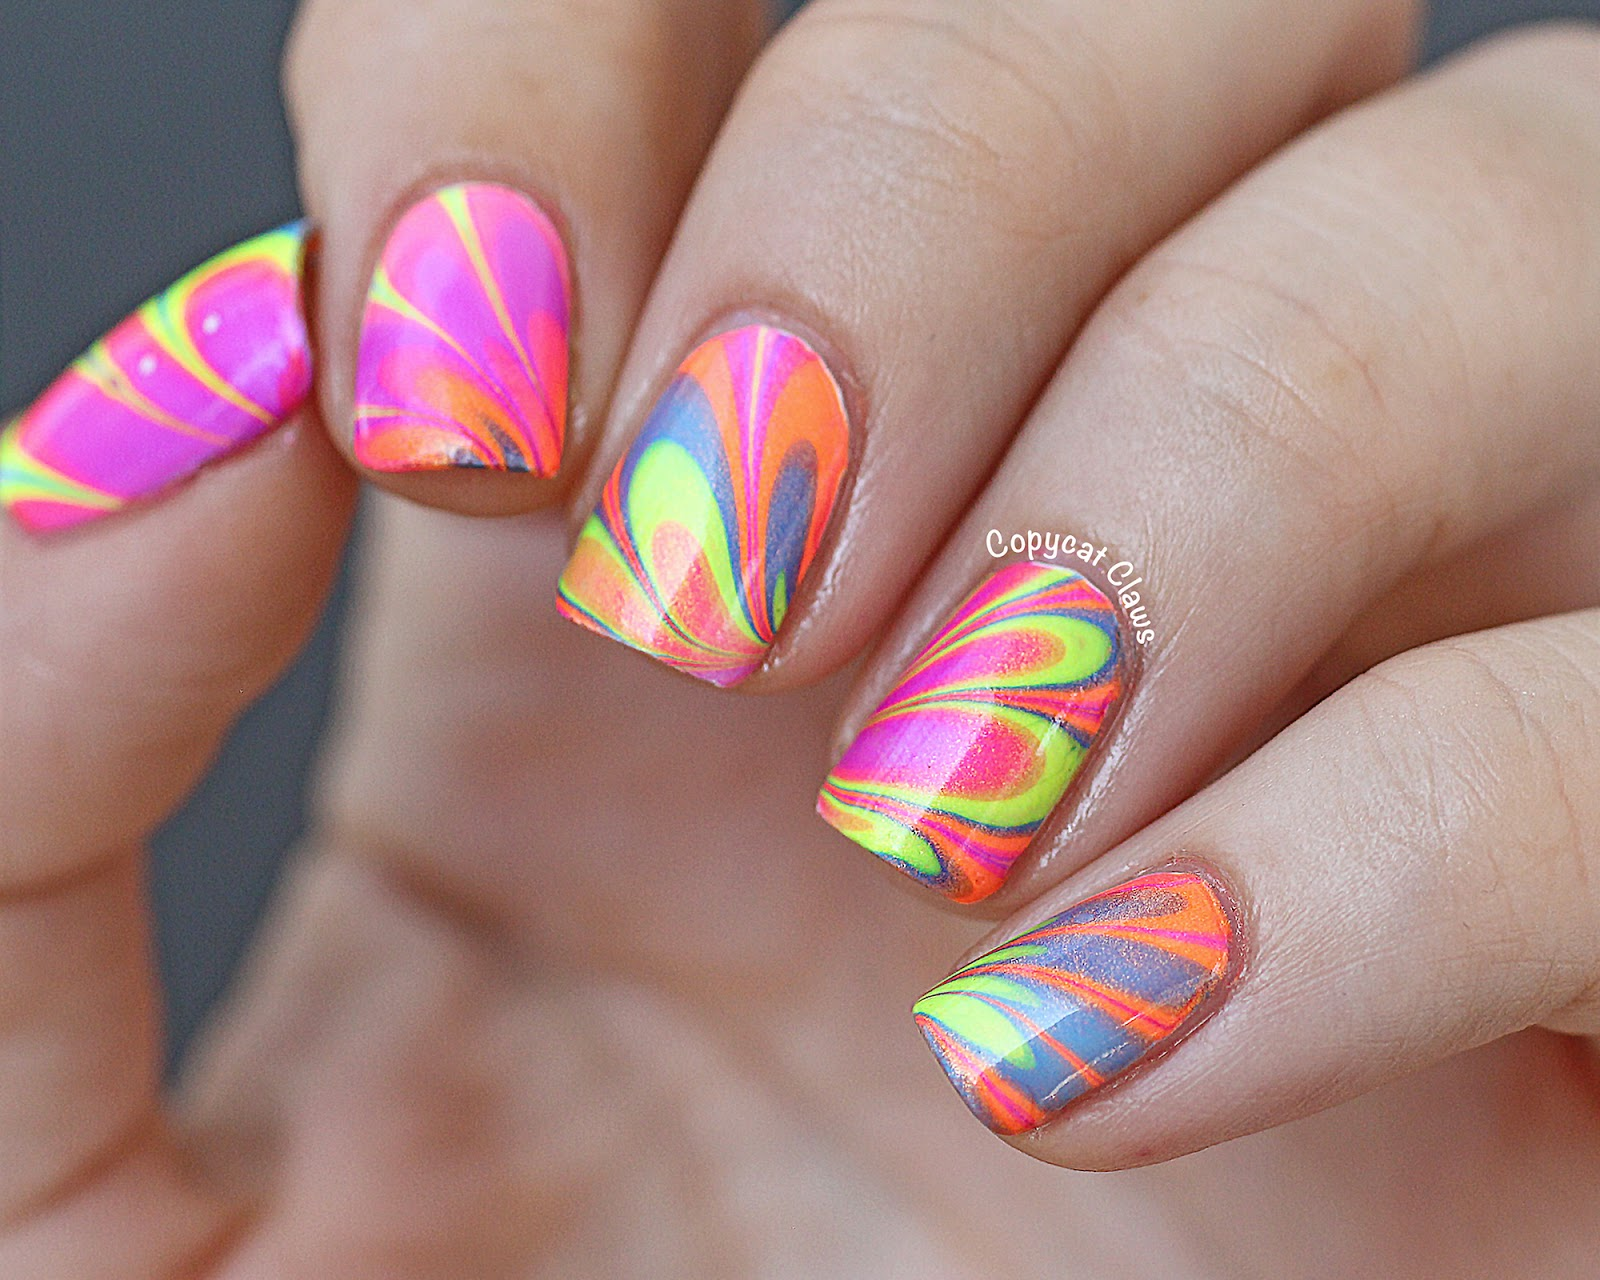 Nail Designs With Water And Nail Polish